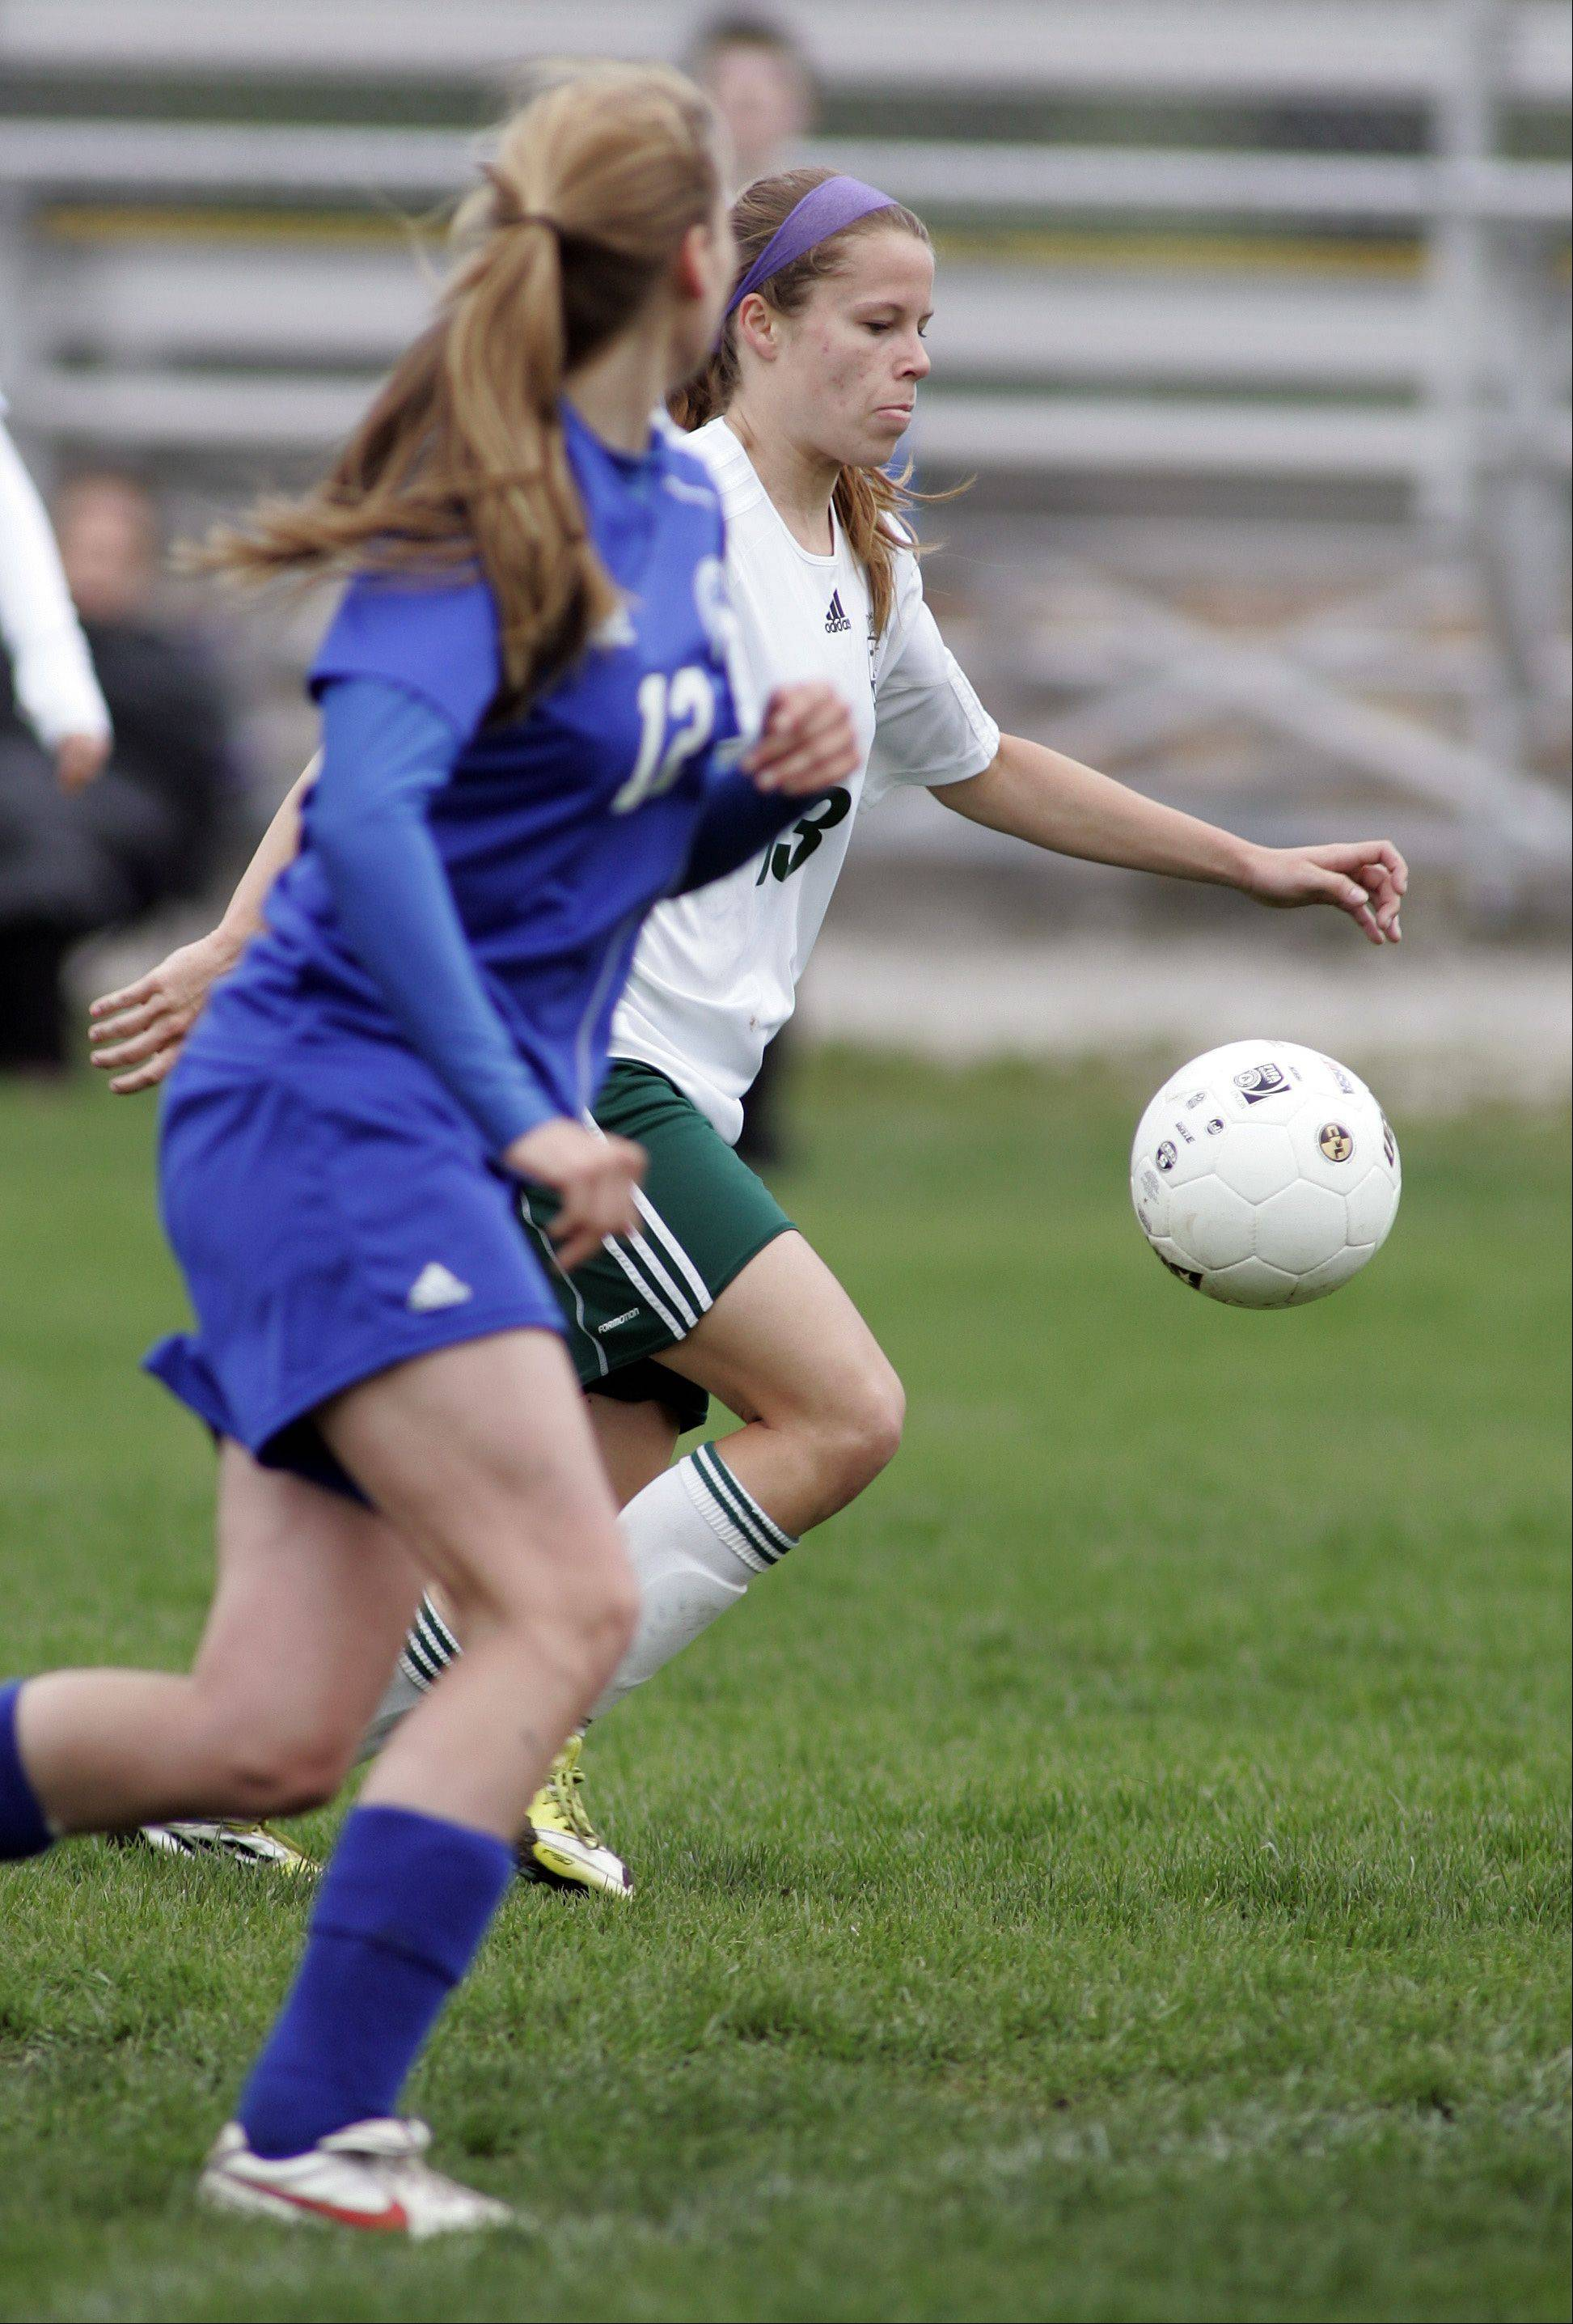 St. Edward's Meagan Kearney is on her way to scoring a goal Saturday.